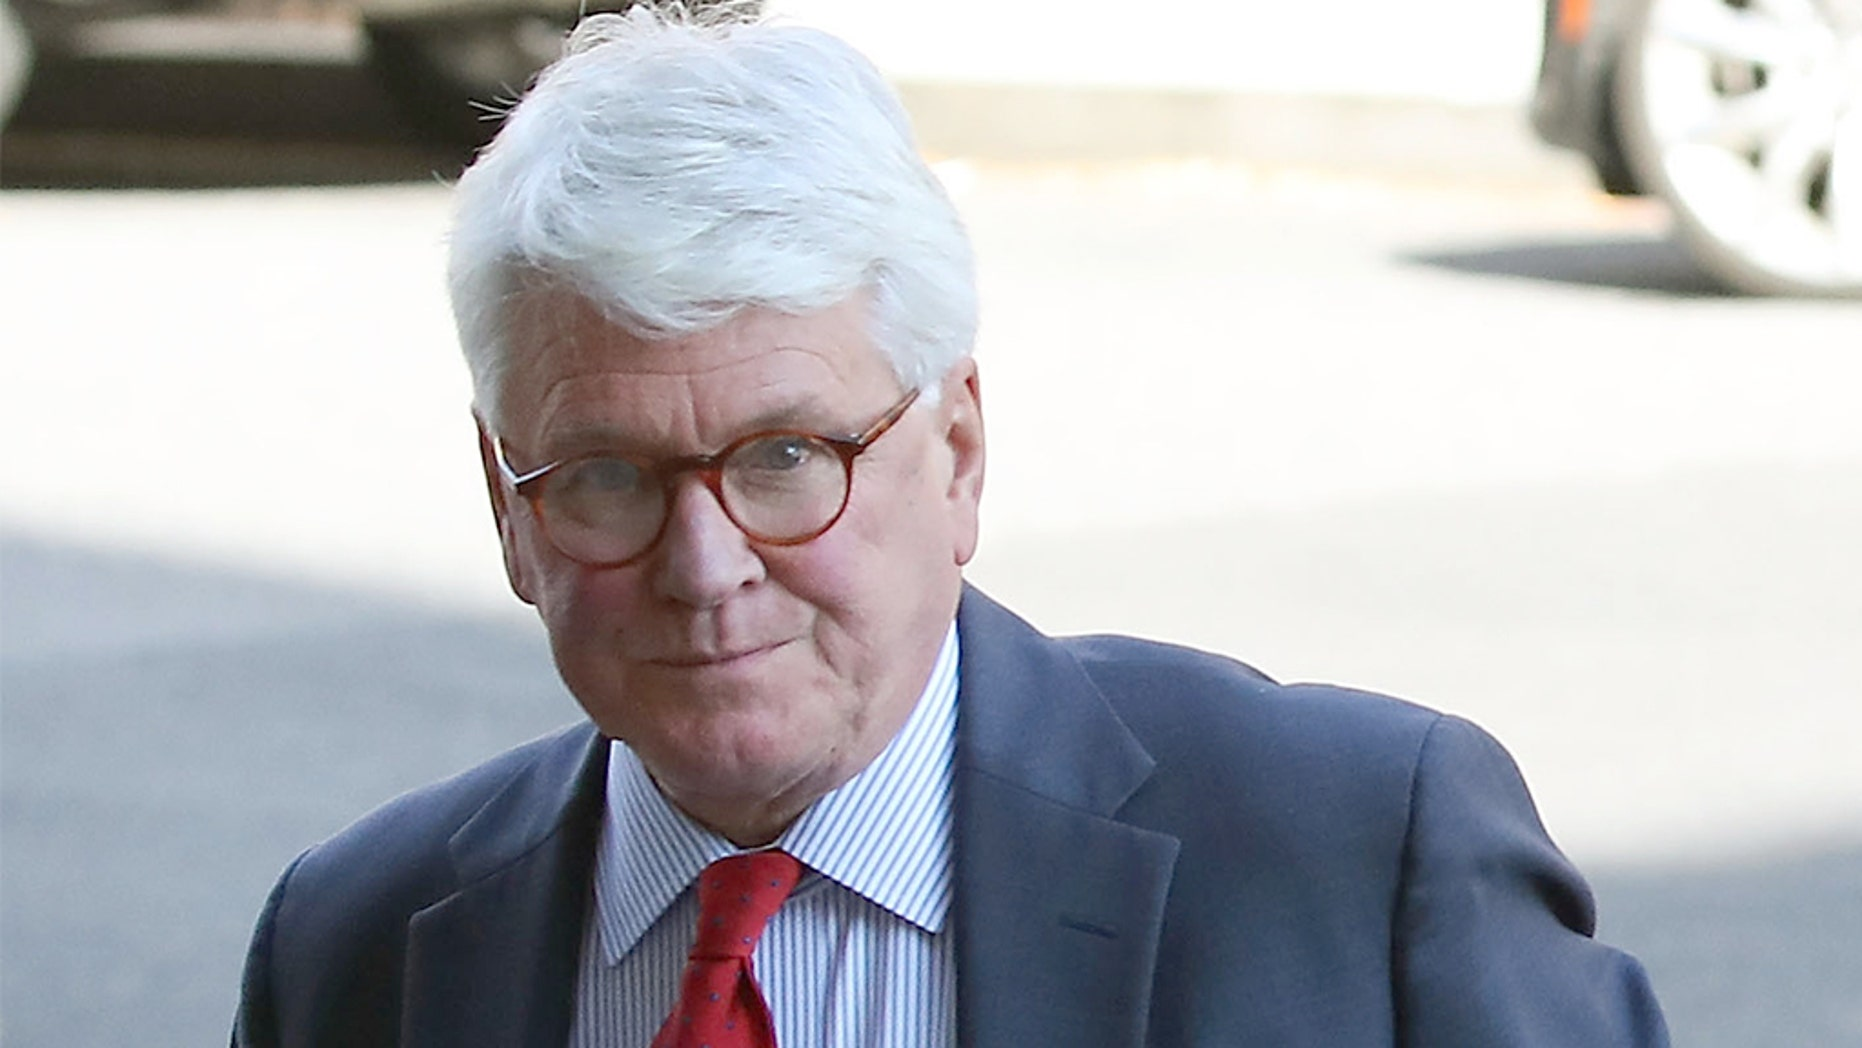 Former Obama White House Counsel Expects to Be Indicted